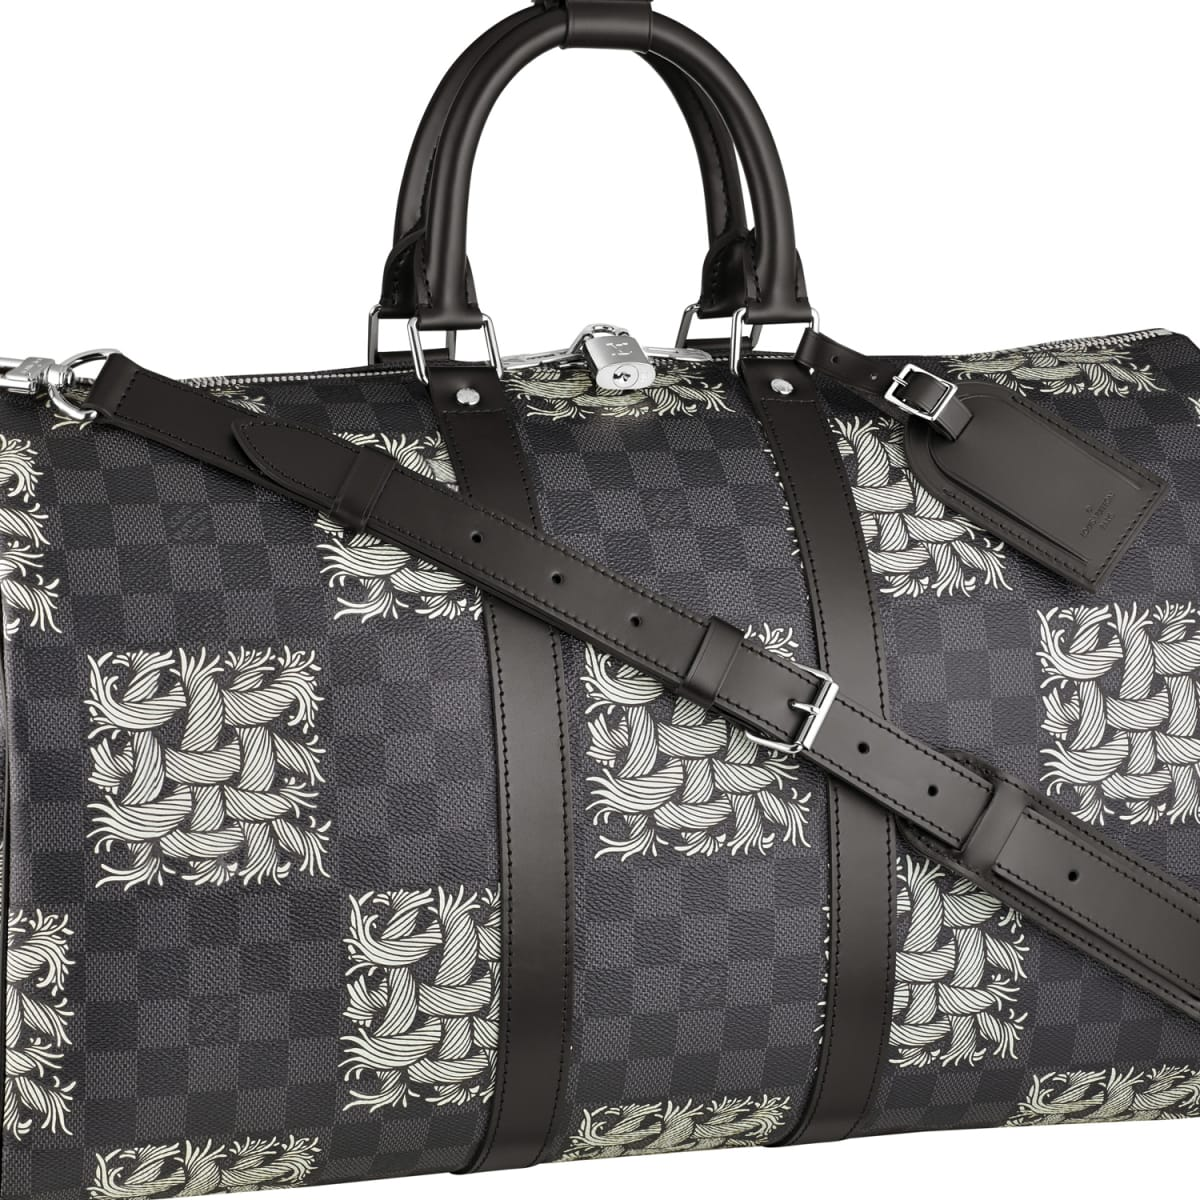 Houston, Christopher Nemeth Collection at Louis Vuitton, September 2015, Keepal bag